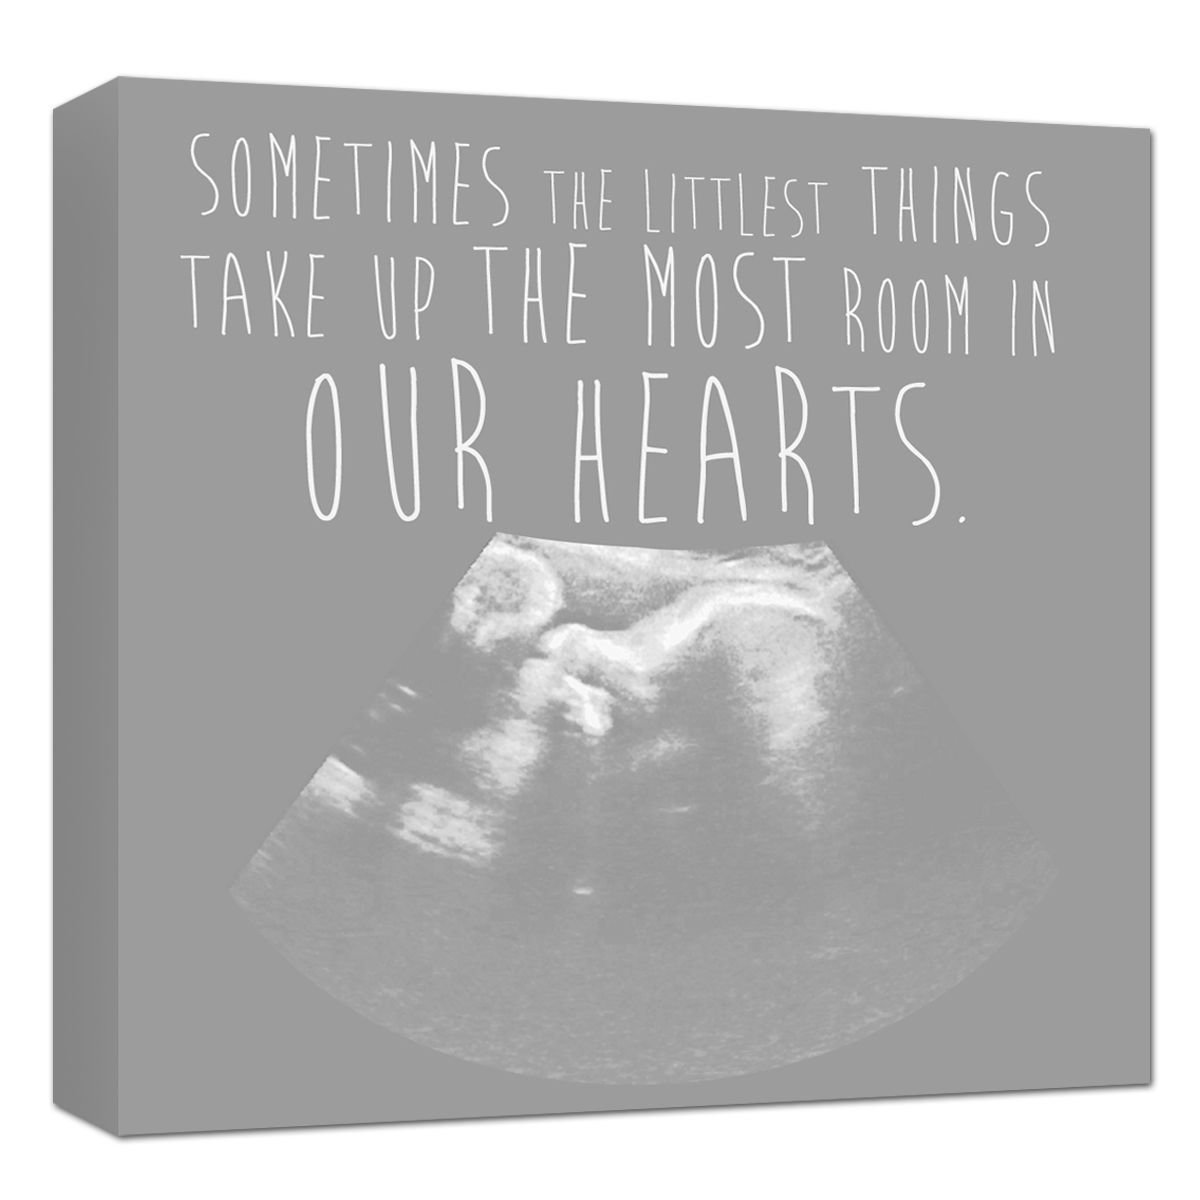 Amazing Christmas Gifts For Her: Ultrasound Artwork Sonogram Canvas Nursery Art